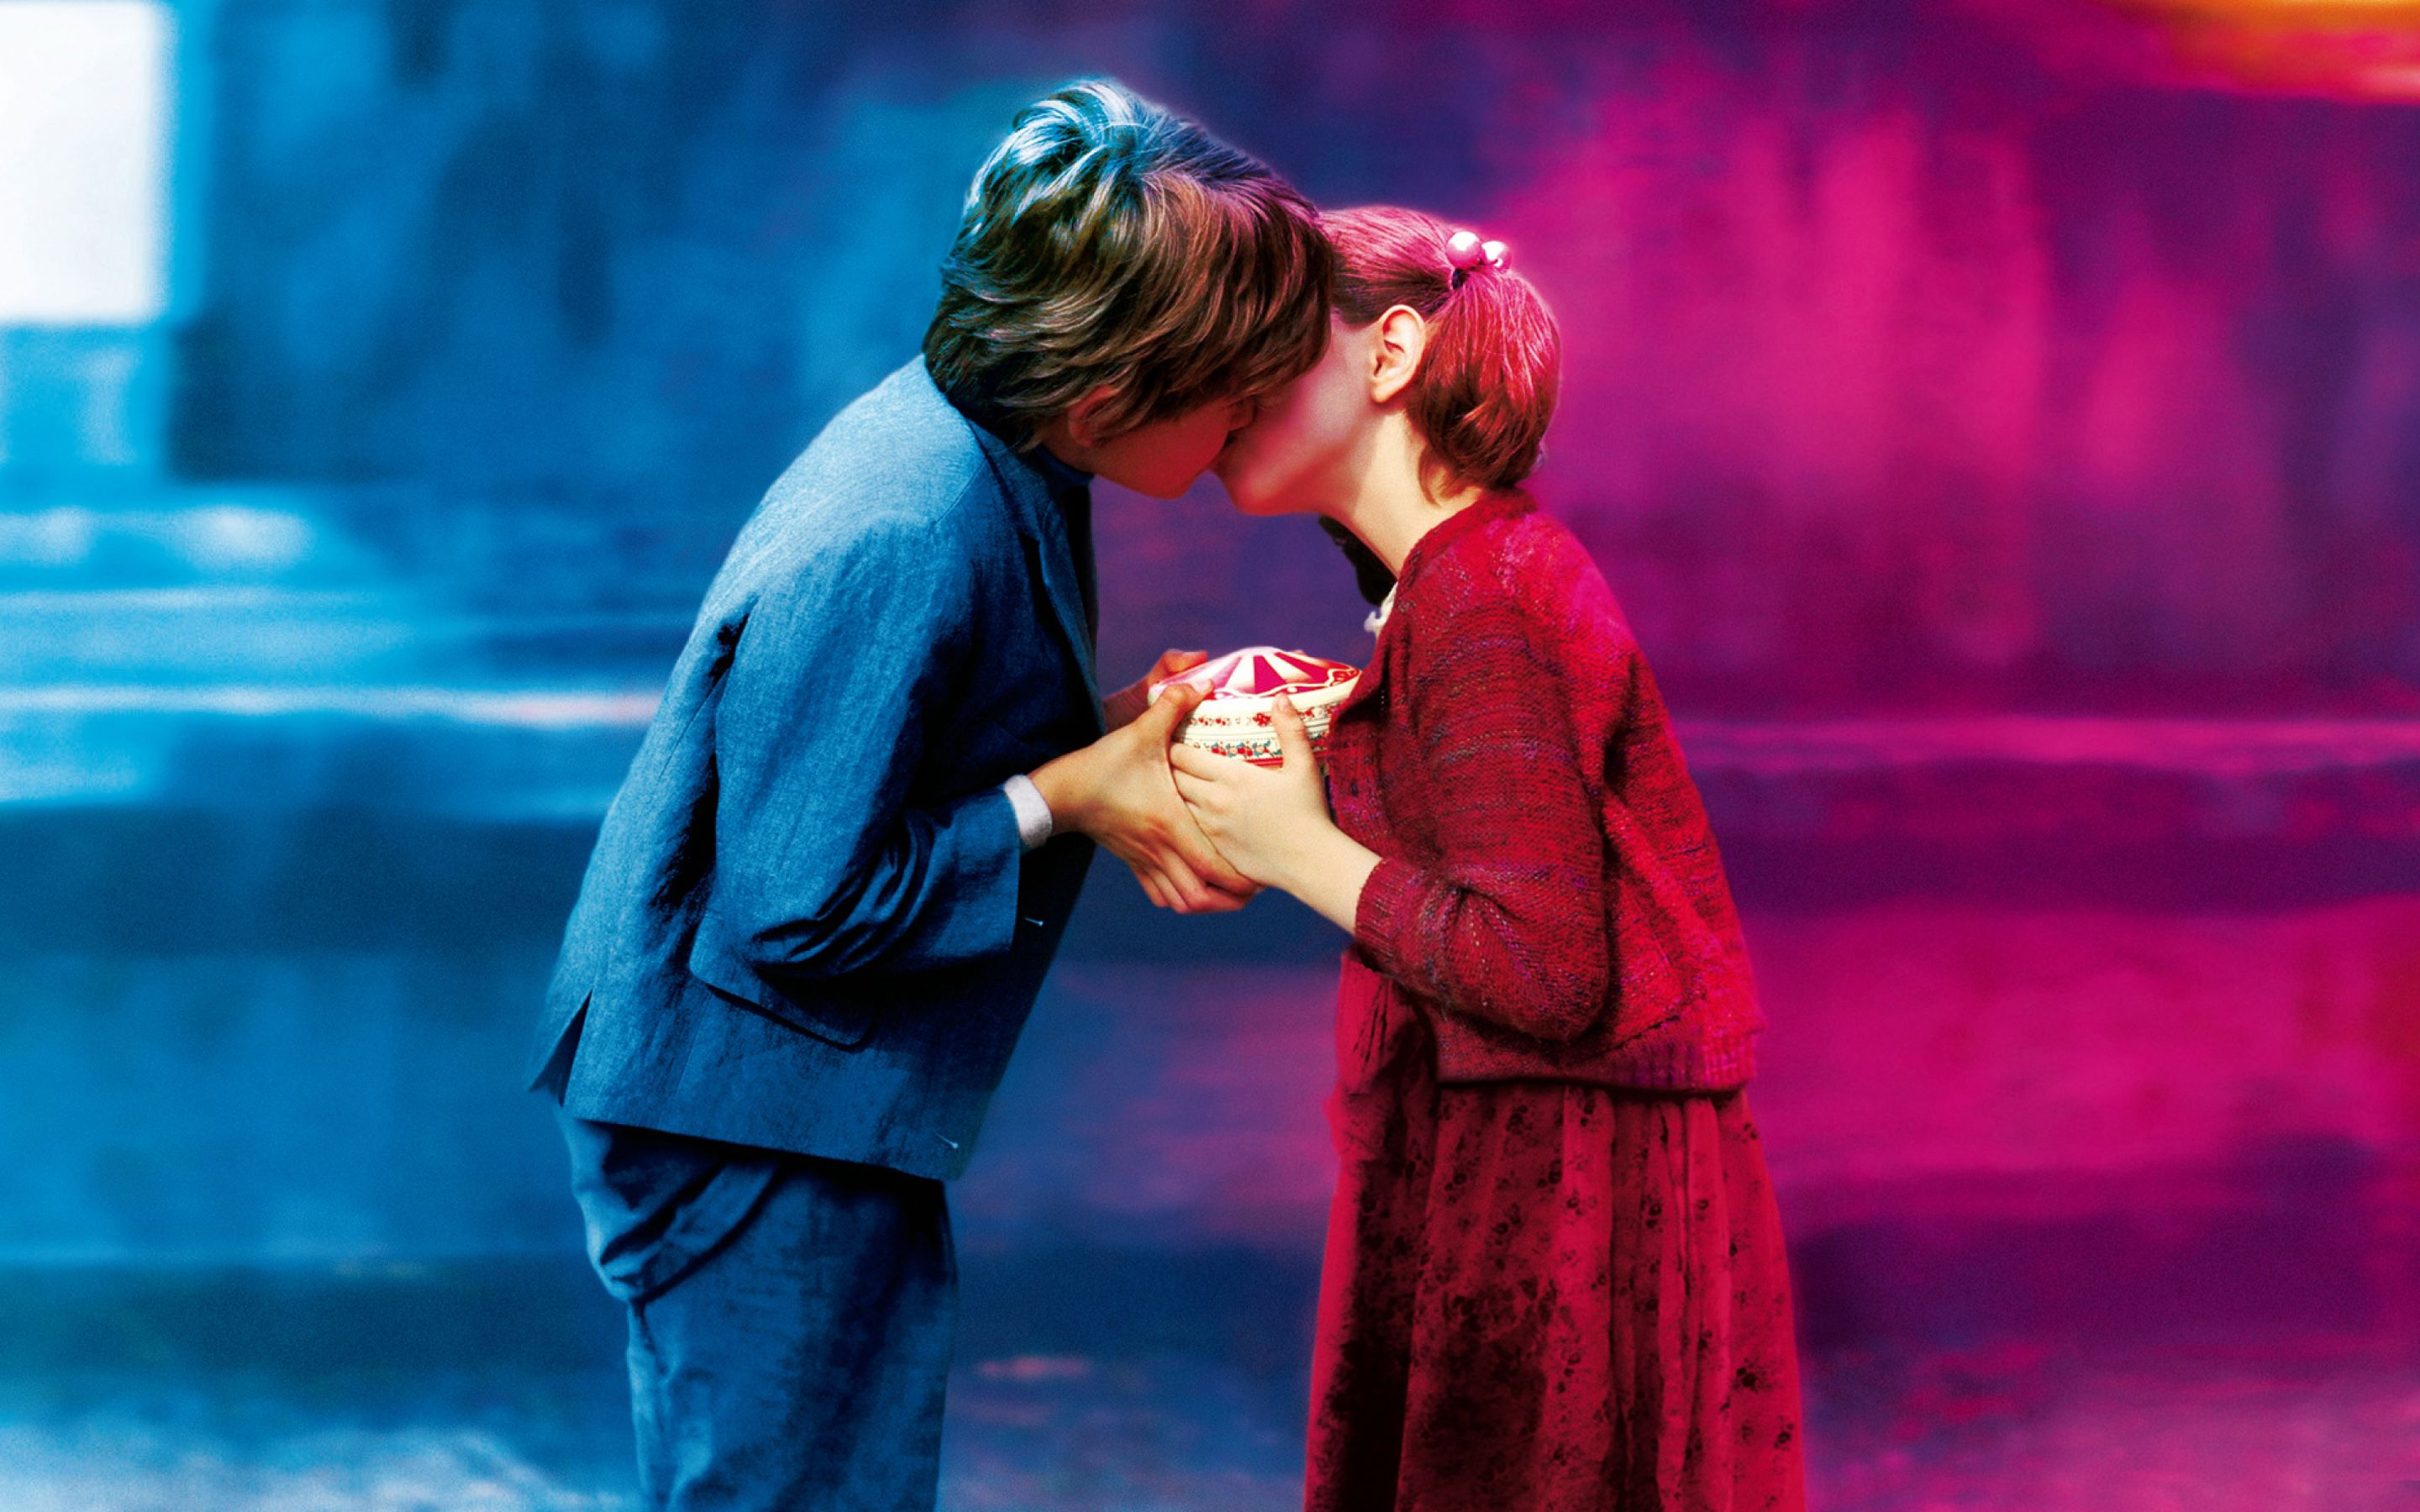 Boy Girl Cute Kiss Wide Hd Wallpapers High Definition